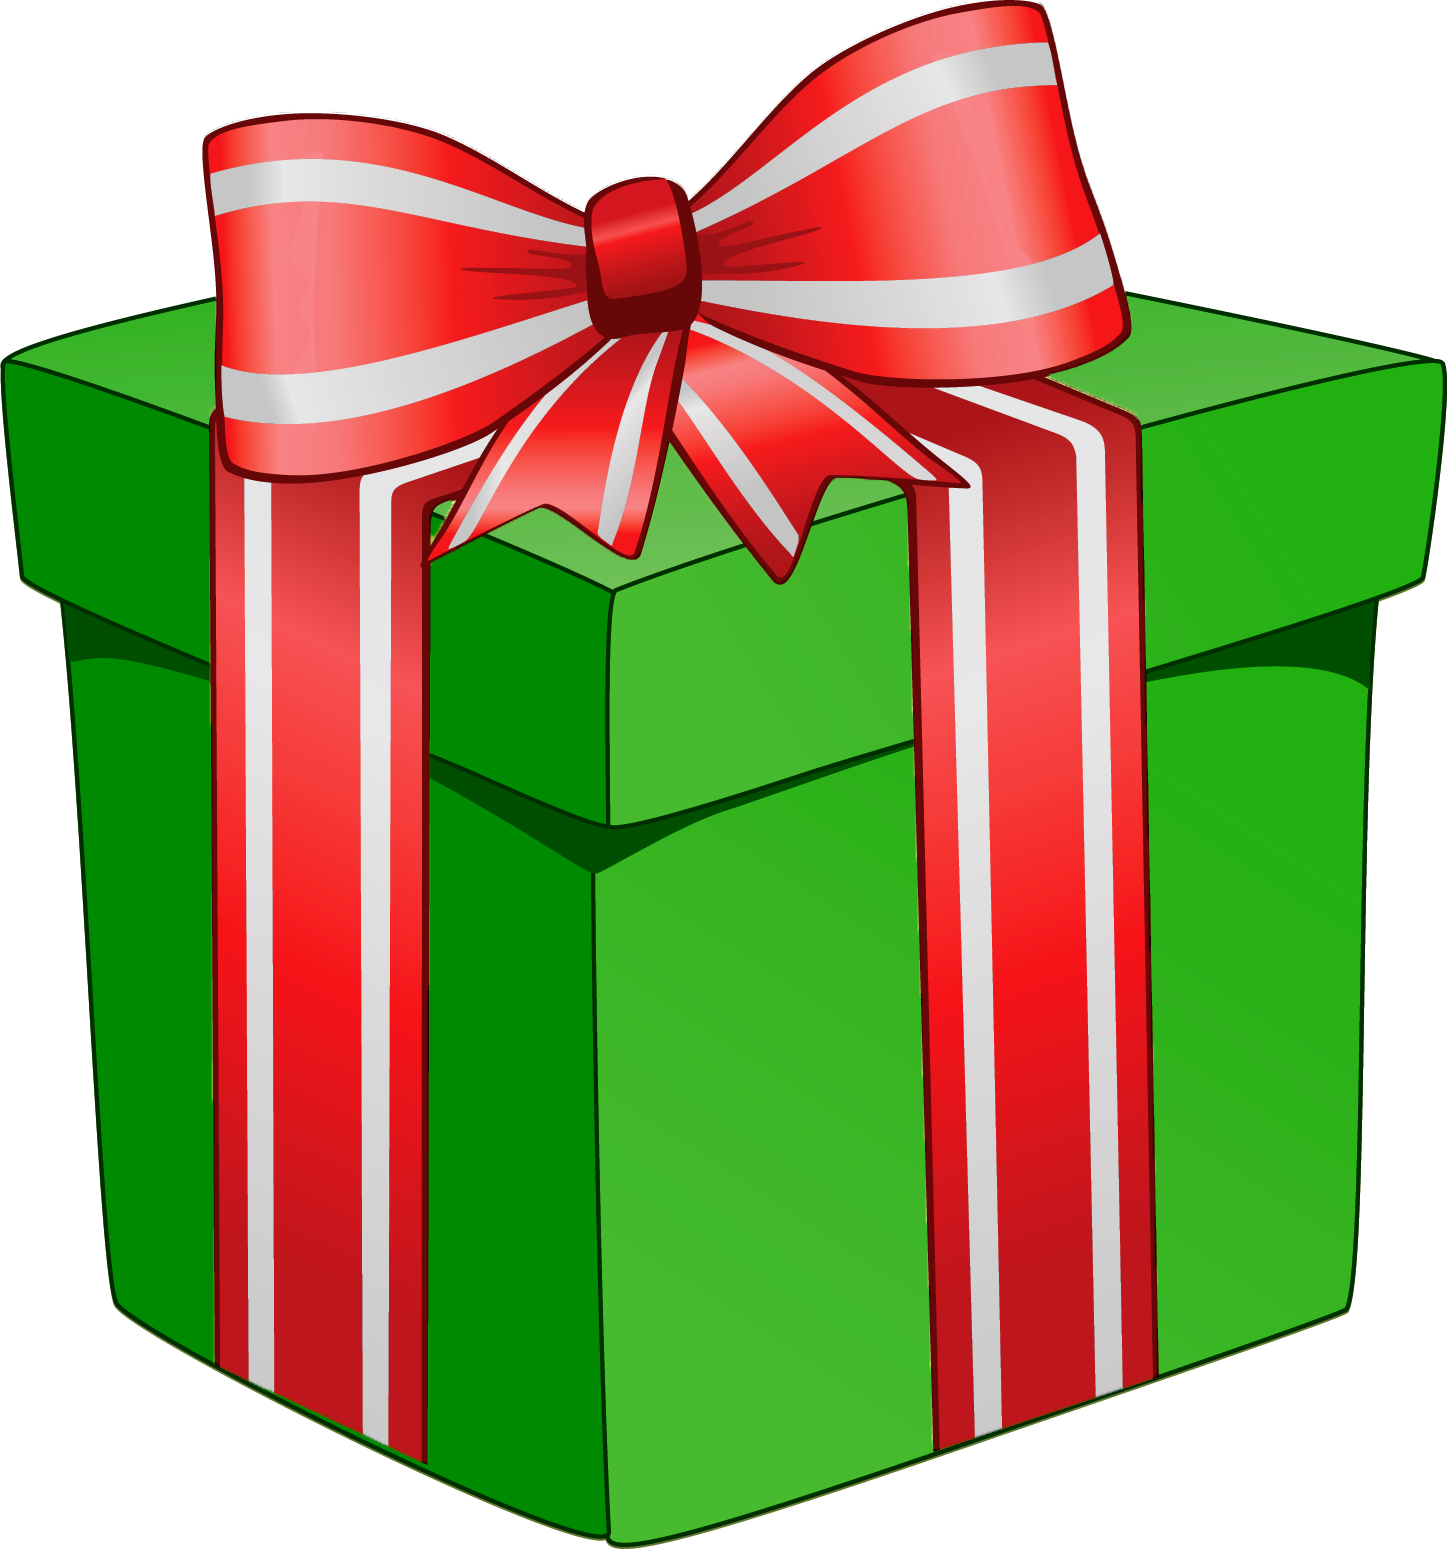 Gift Boxes Clip Art - Cliparts.co